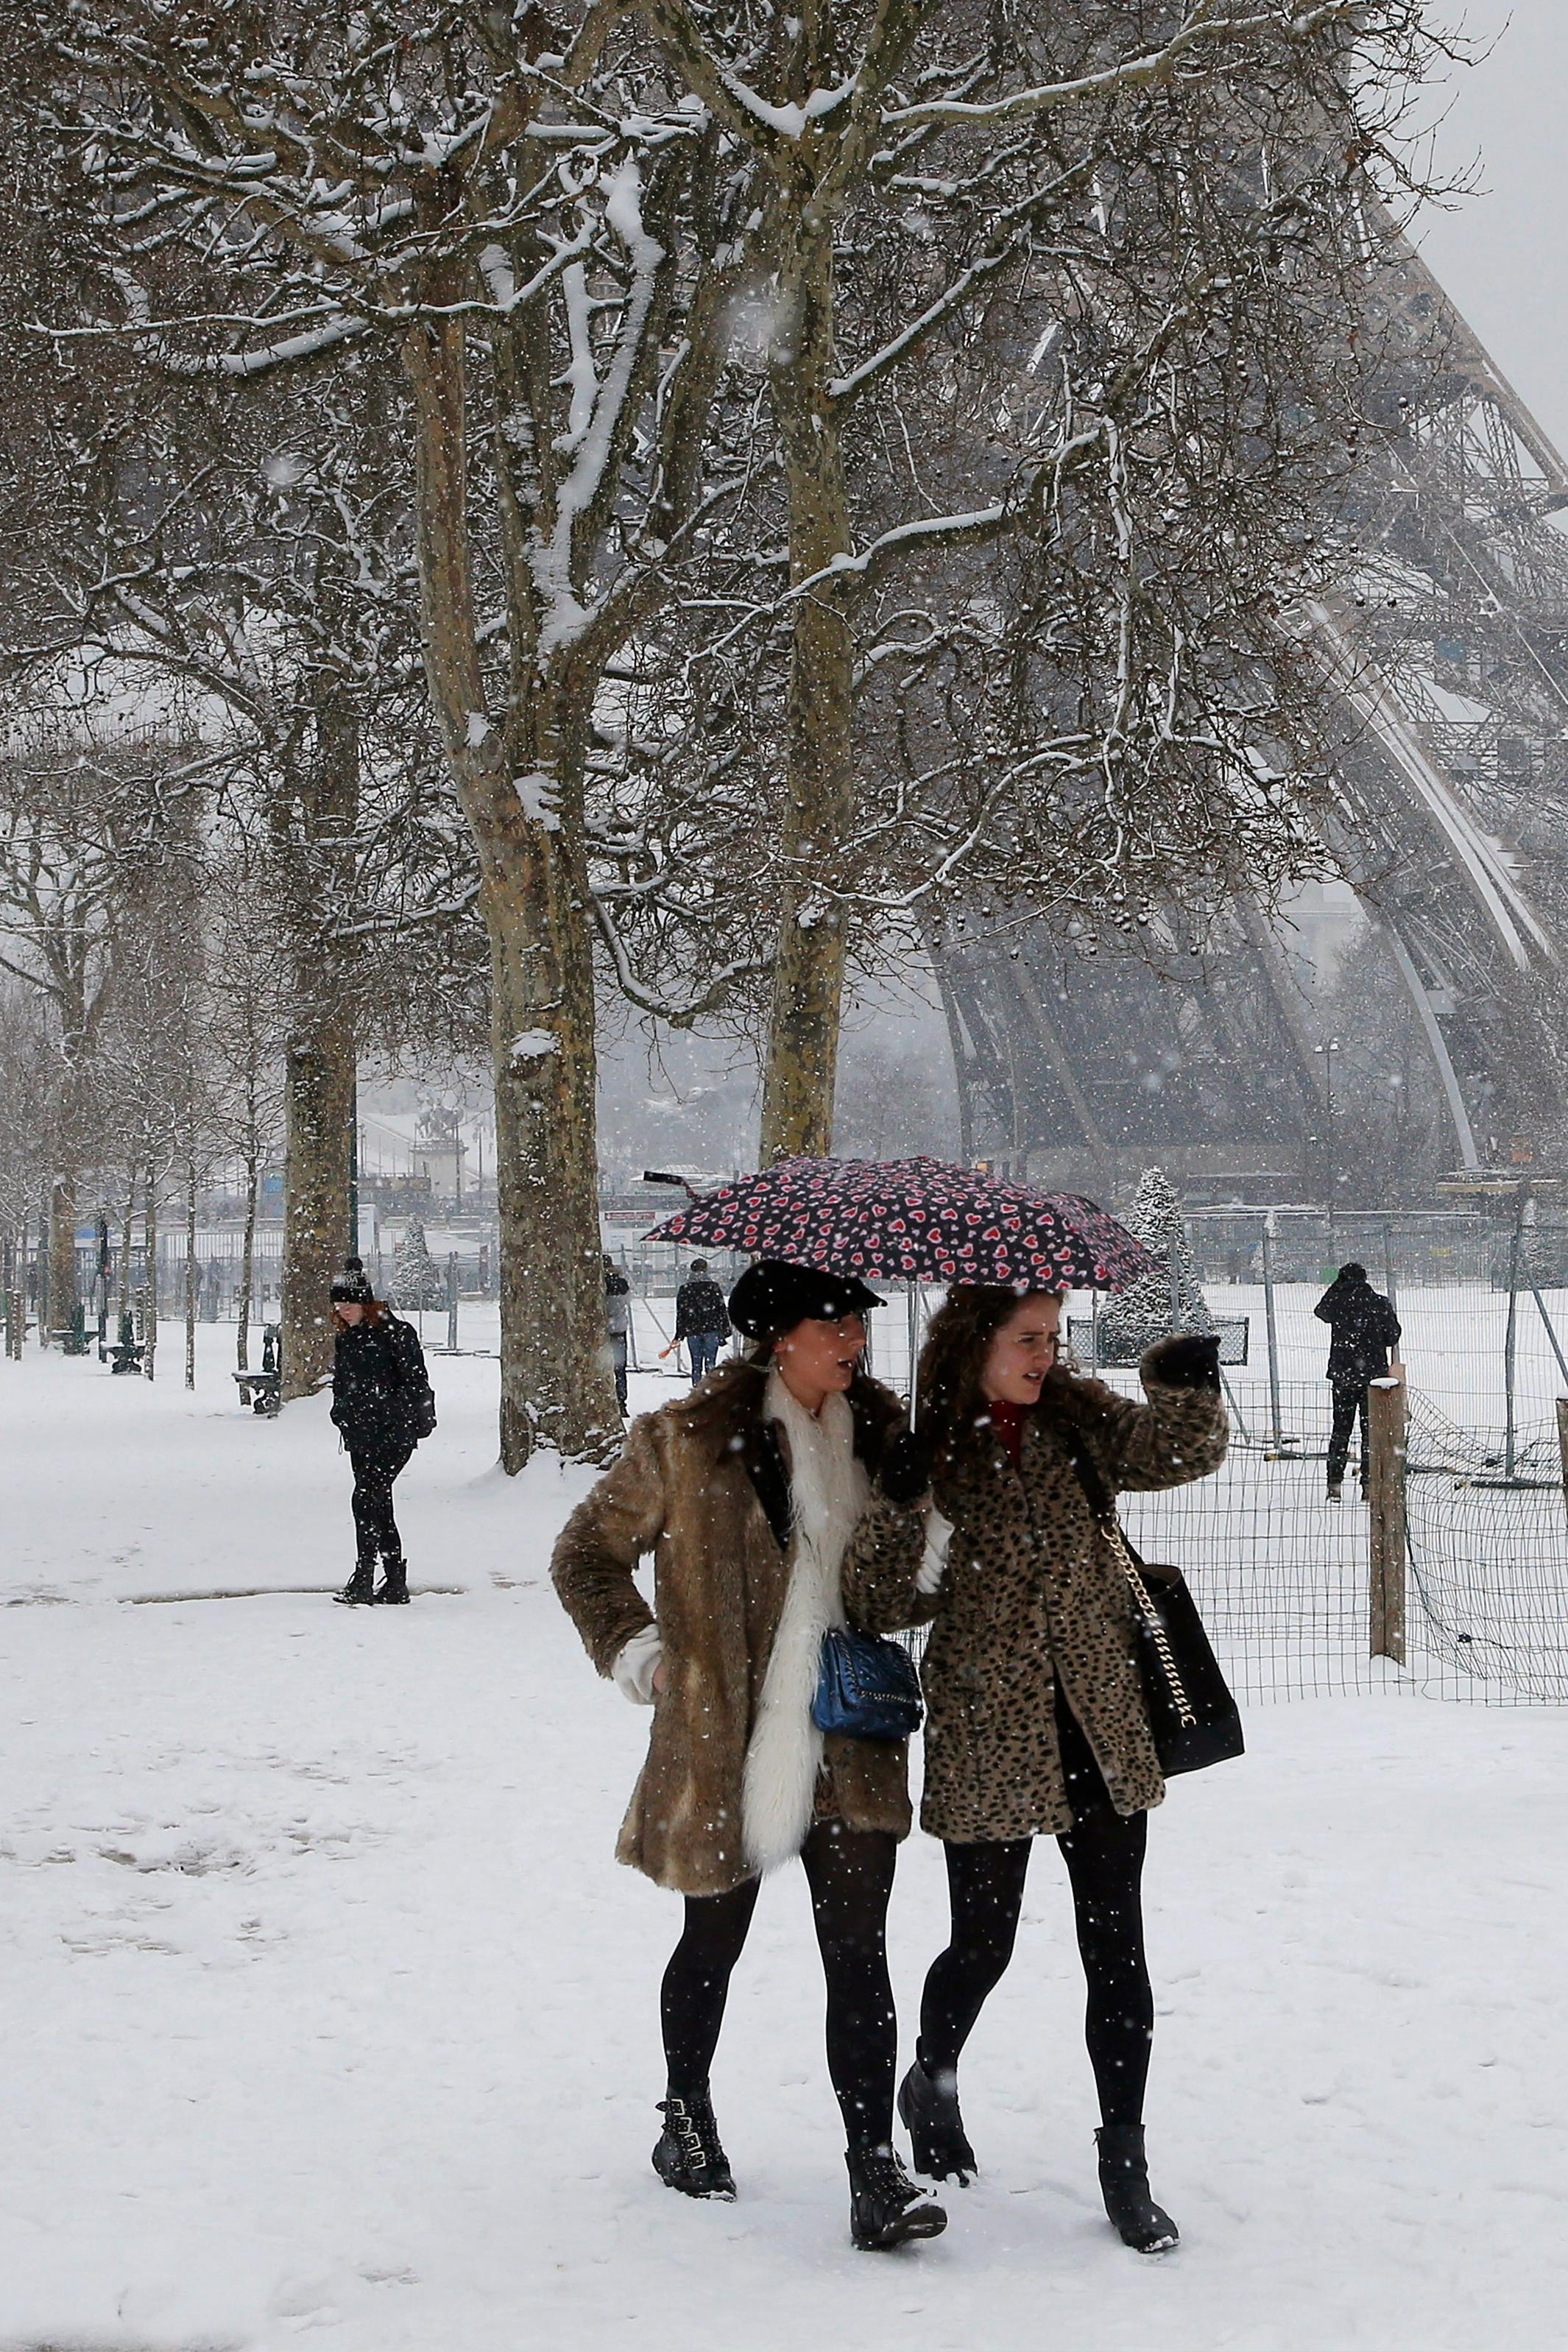 People stroll on the snow-covered Champ de Mars during a snowfall in Paris, France, Friday, Feb. 9, 2018. The Eiffel Tower is closed and authorities are telling drivers in the Paris region to stay home as snow and freezing rain have hit a swath of France ill-prepared for the wintry weather. (AP Photo/Michel Euler)